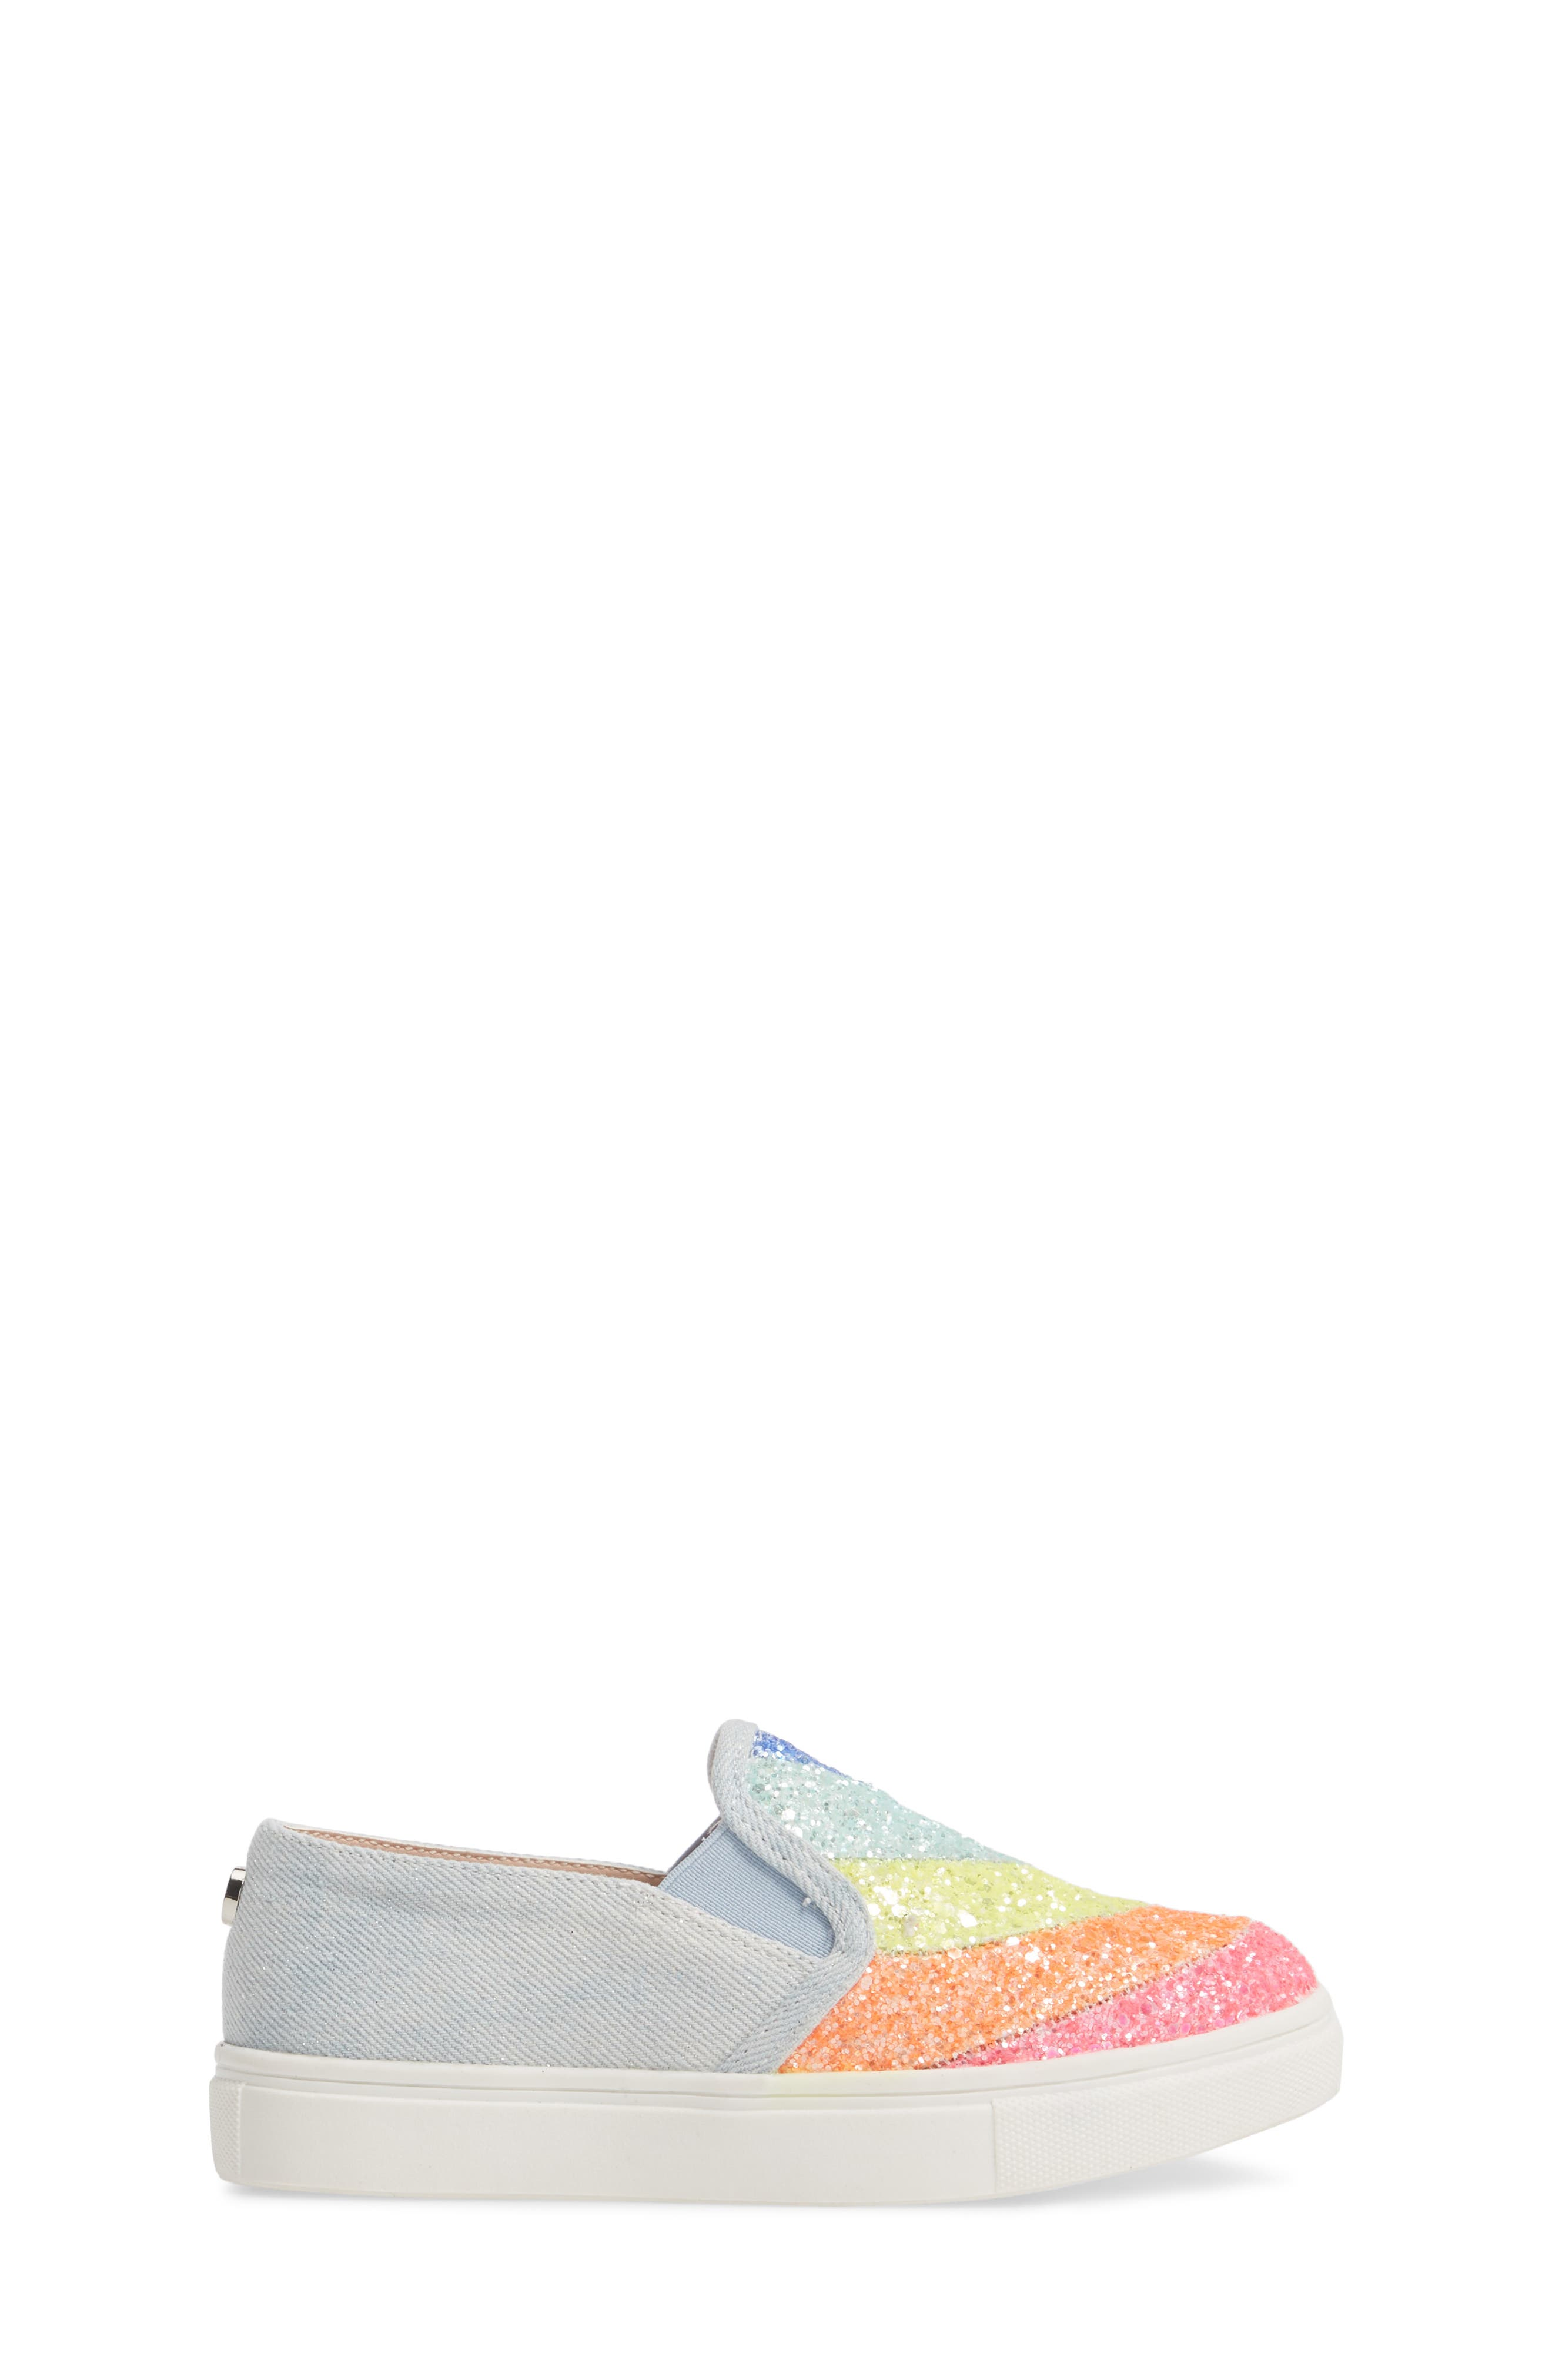 JWISH Rainbow Slip-On Sneaker,                             Alternate thumbnail 3, color,                             650